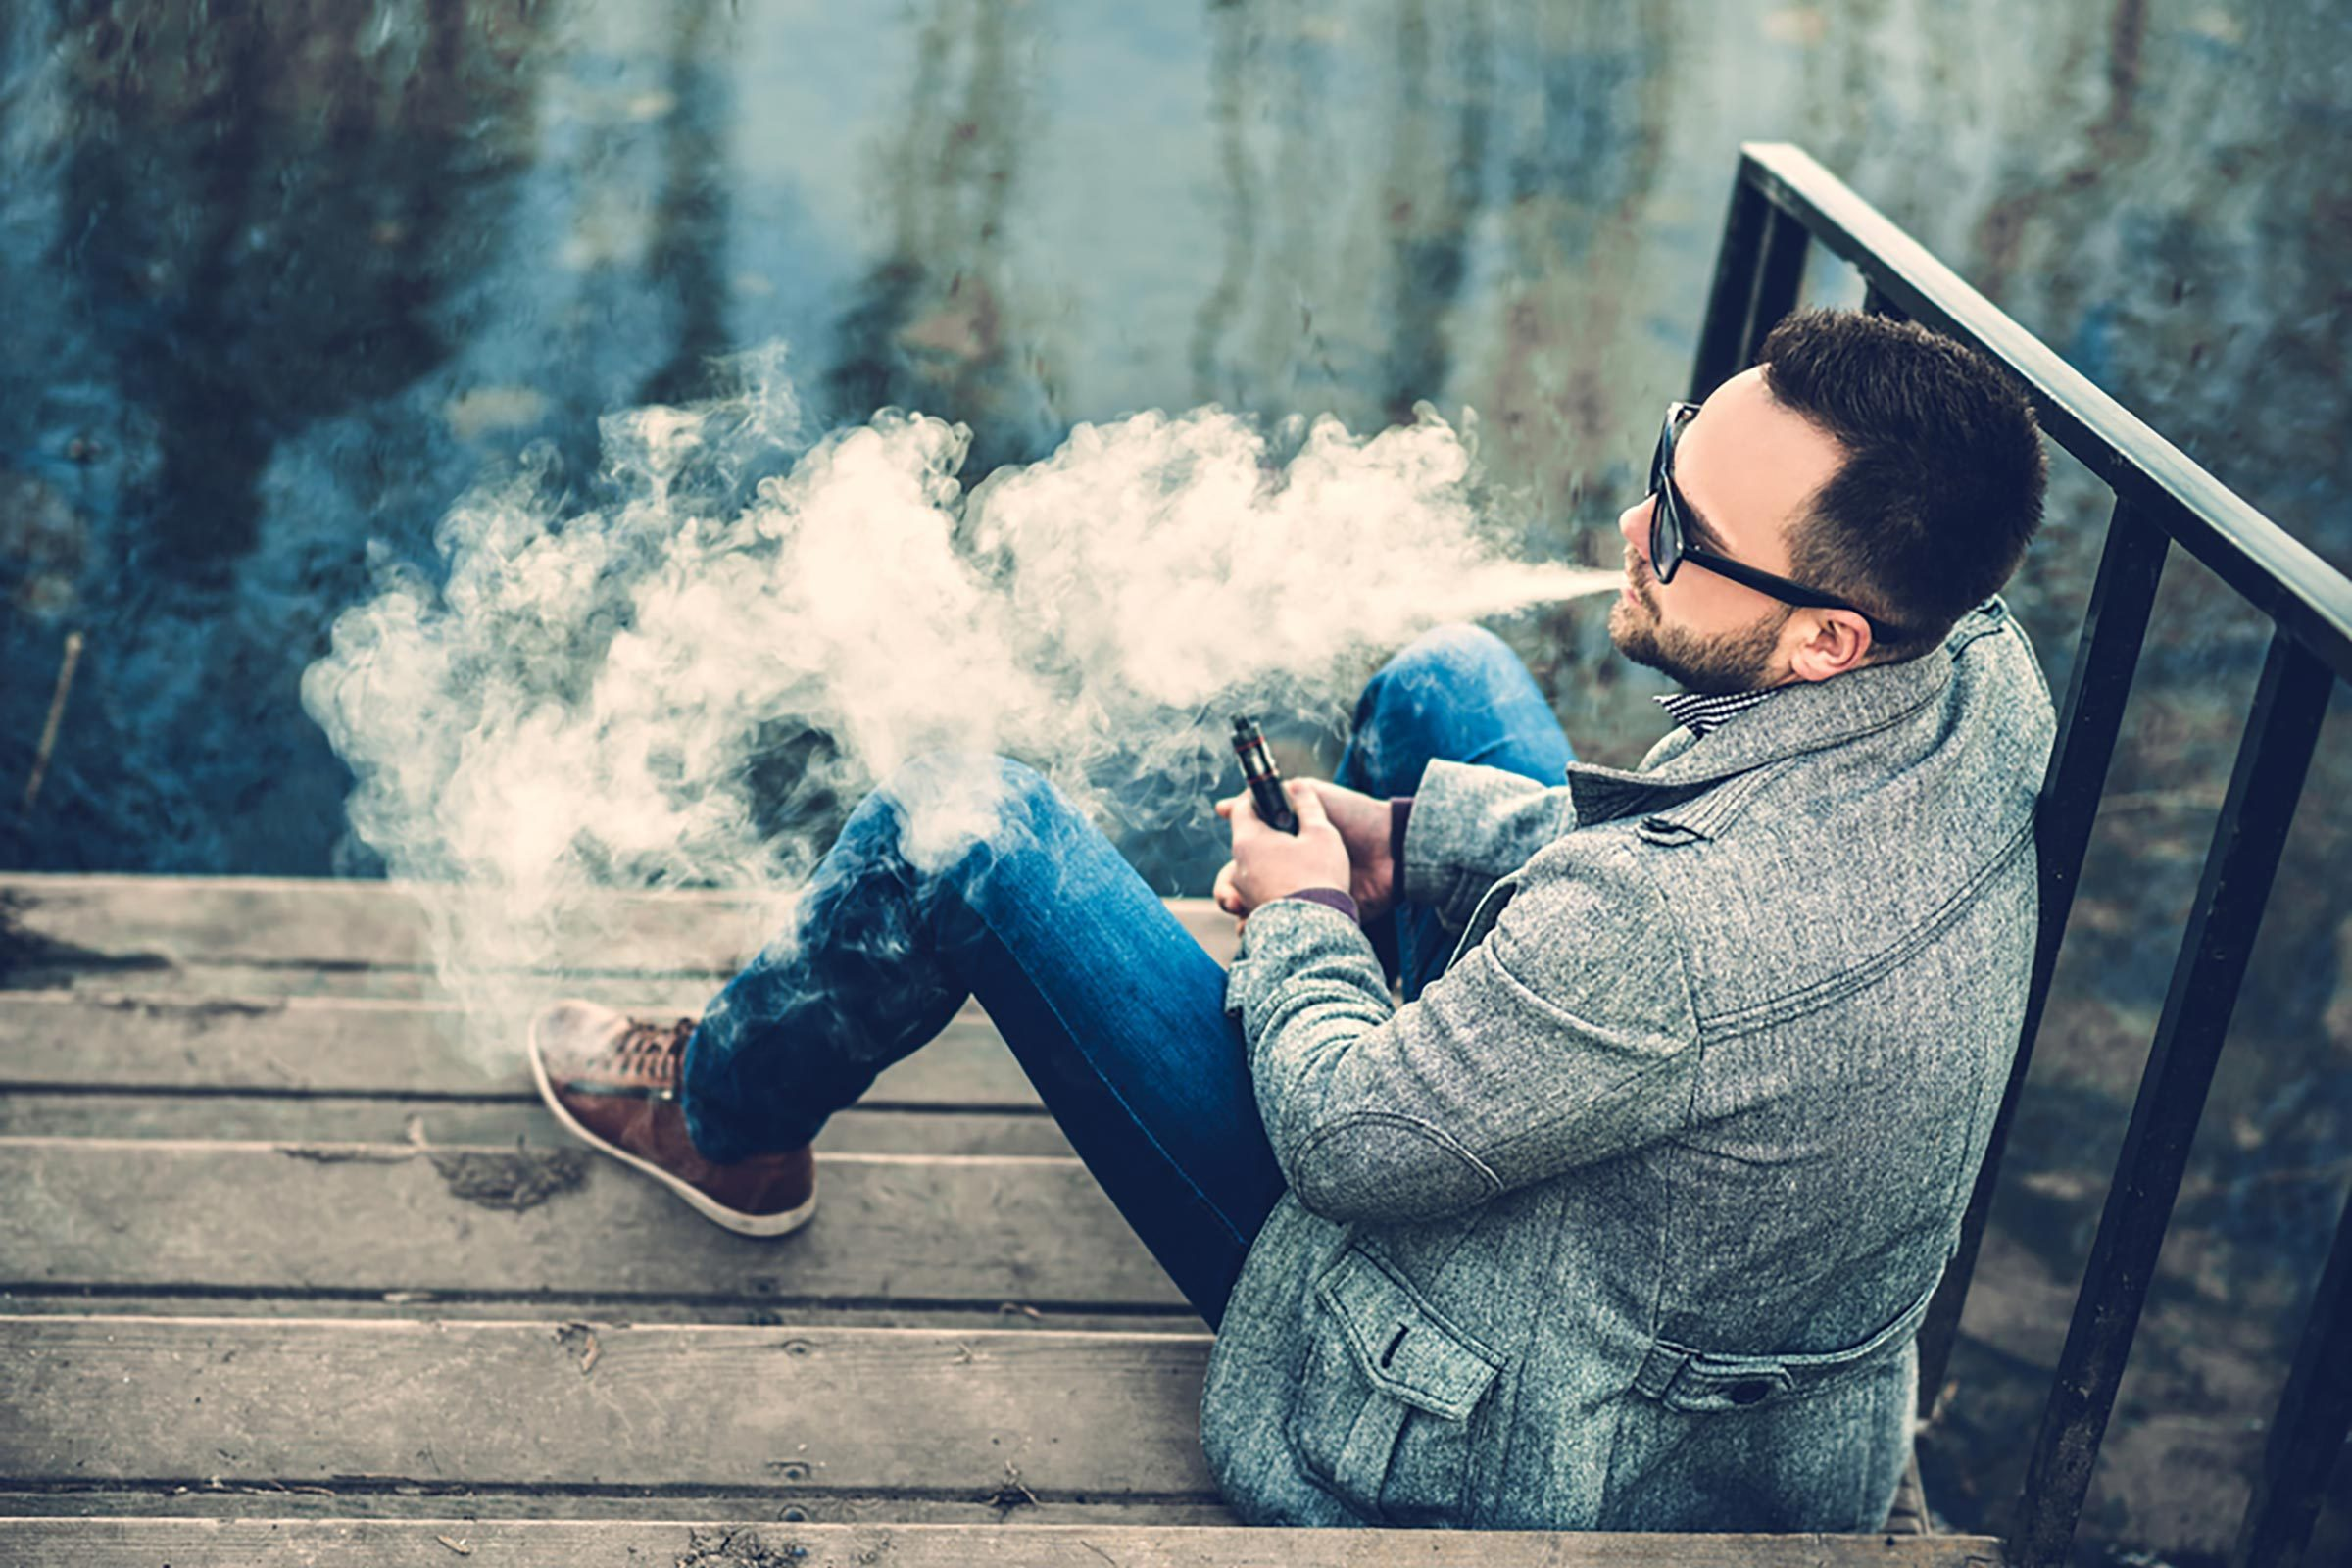 man vaping outdoors on steps